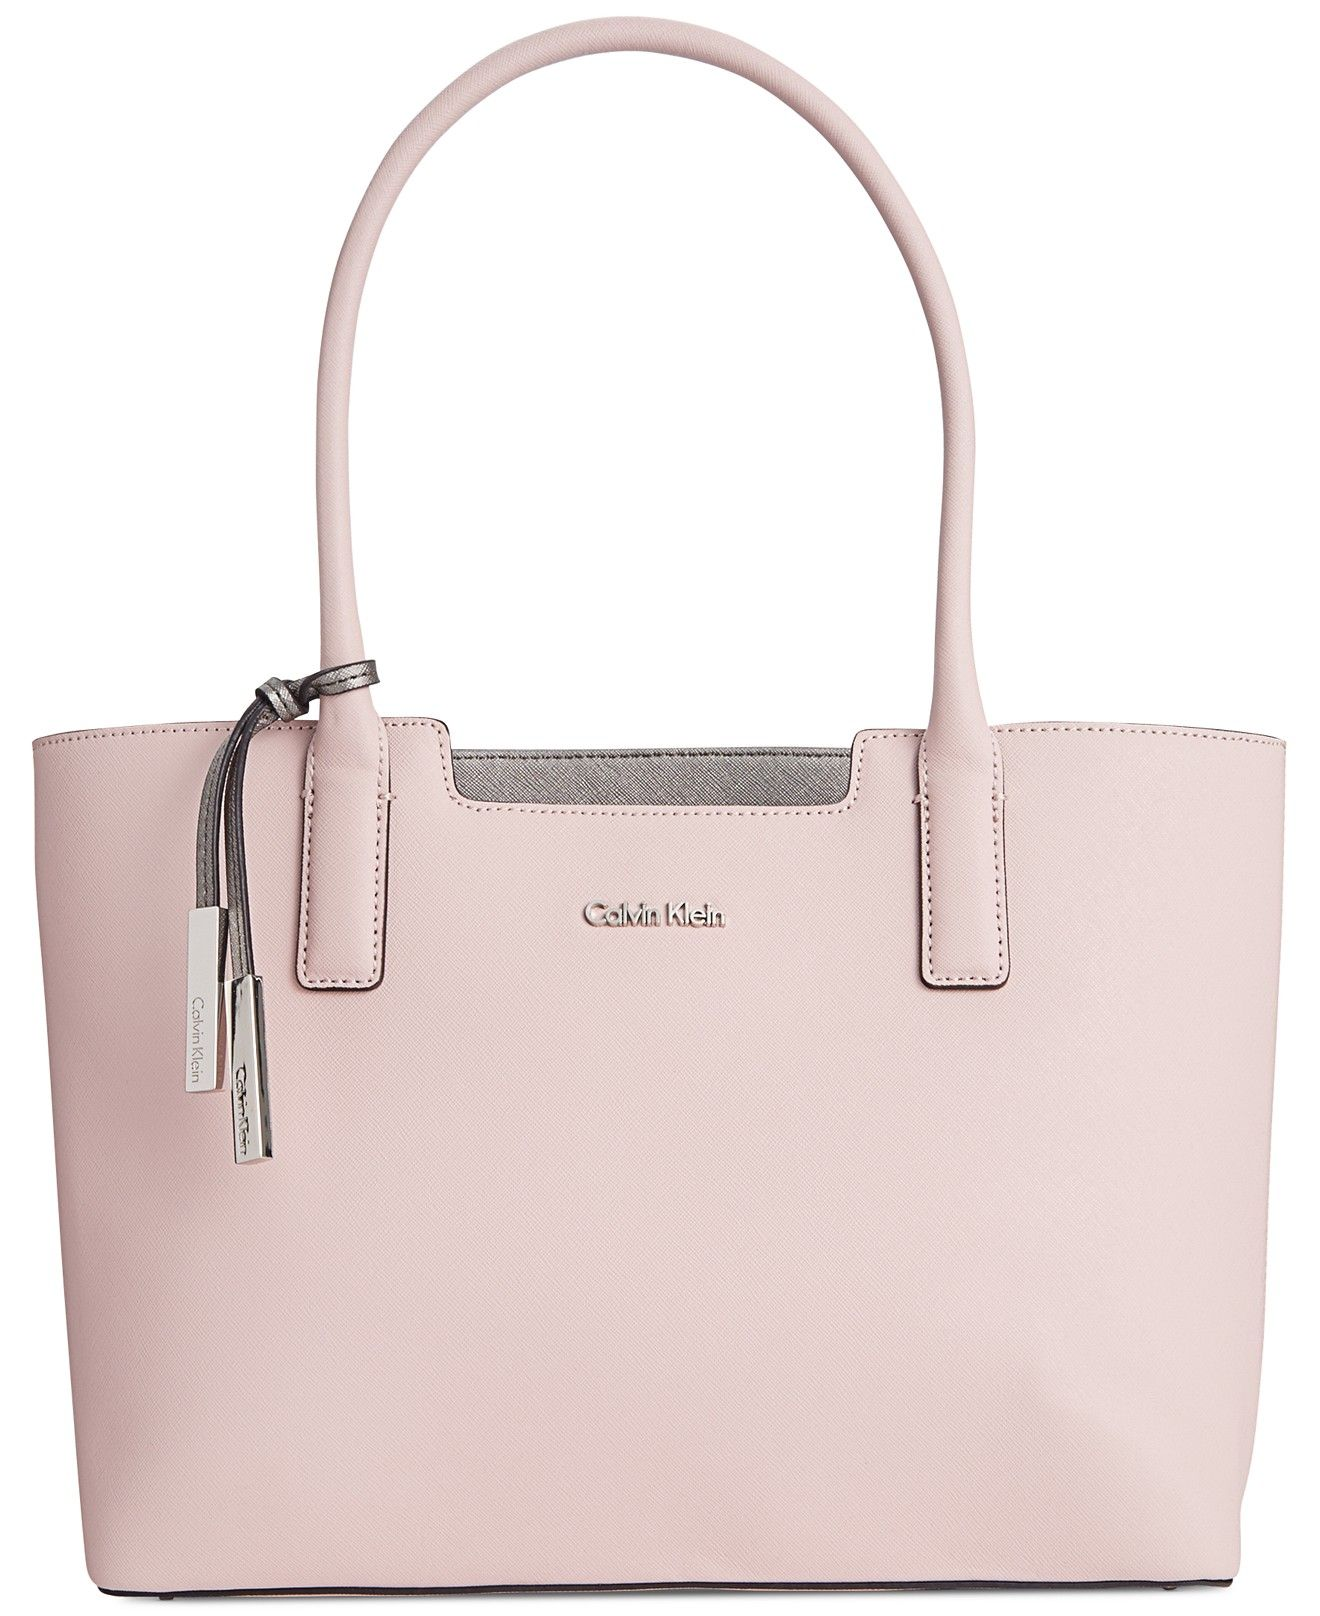 9a50b6f8185 Calvin Klein Saffiano Leather Tote - Calvin Klein - Handbags & Accessories  - Macy's